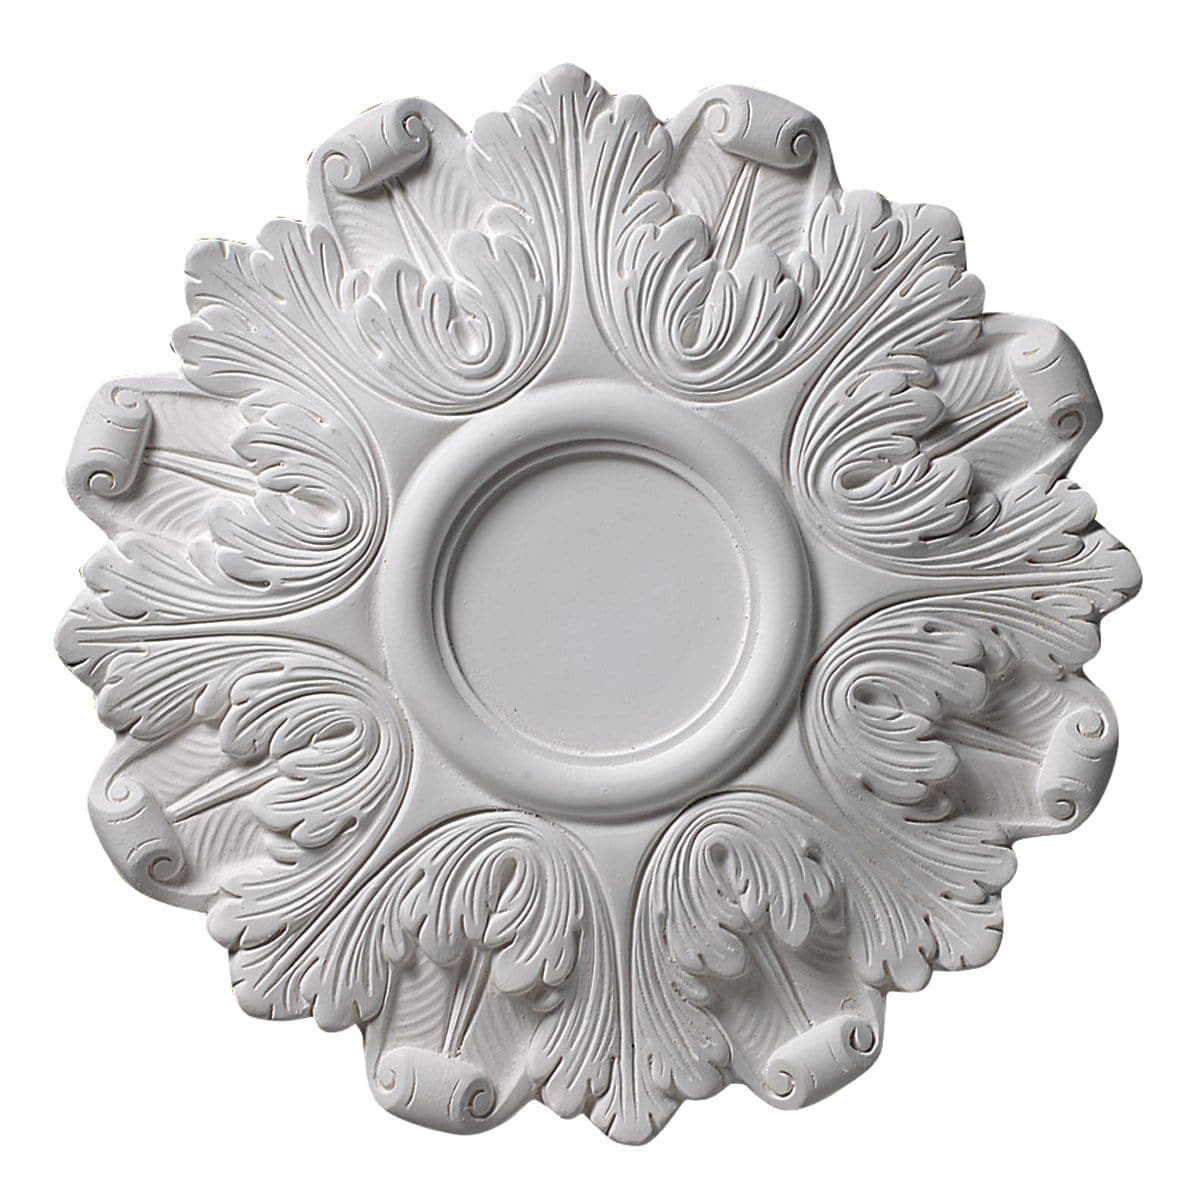 "Ring of Acanthus , 4 3/4"" center, 16 ¾'' dia. x 1 ¼''d, Plaster, Made To Order, Minimum Order Amount $300"